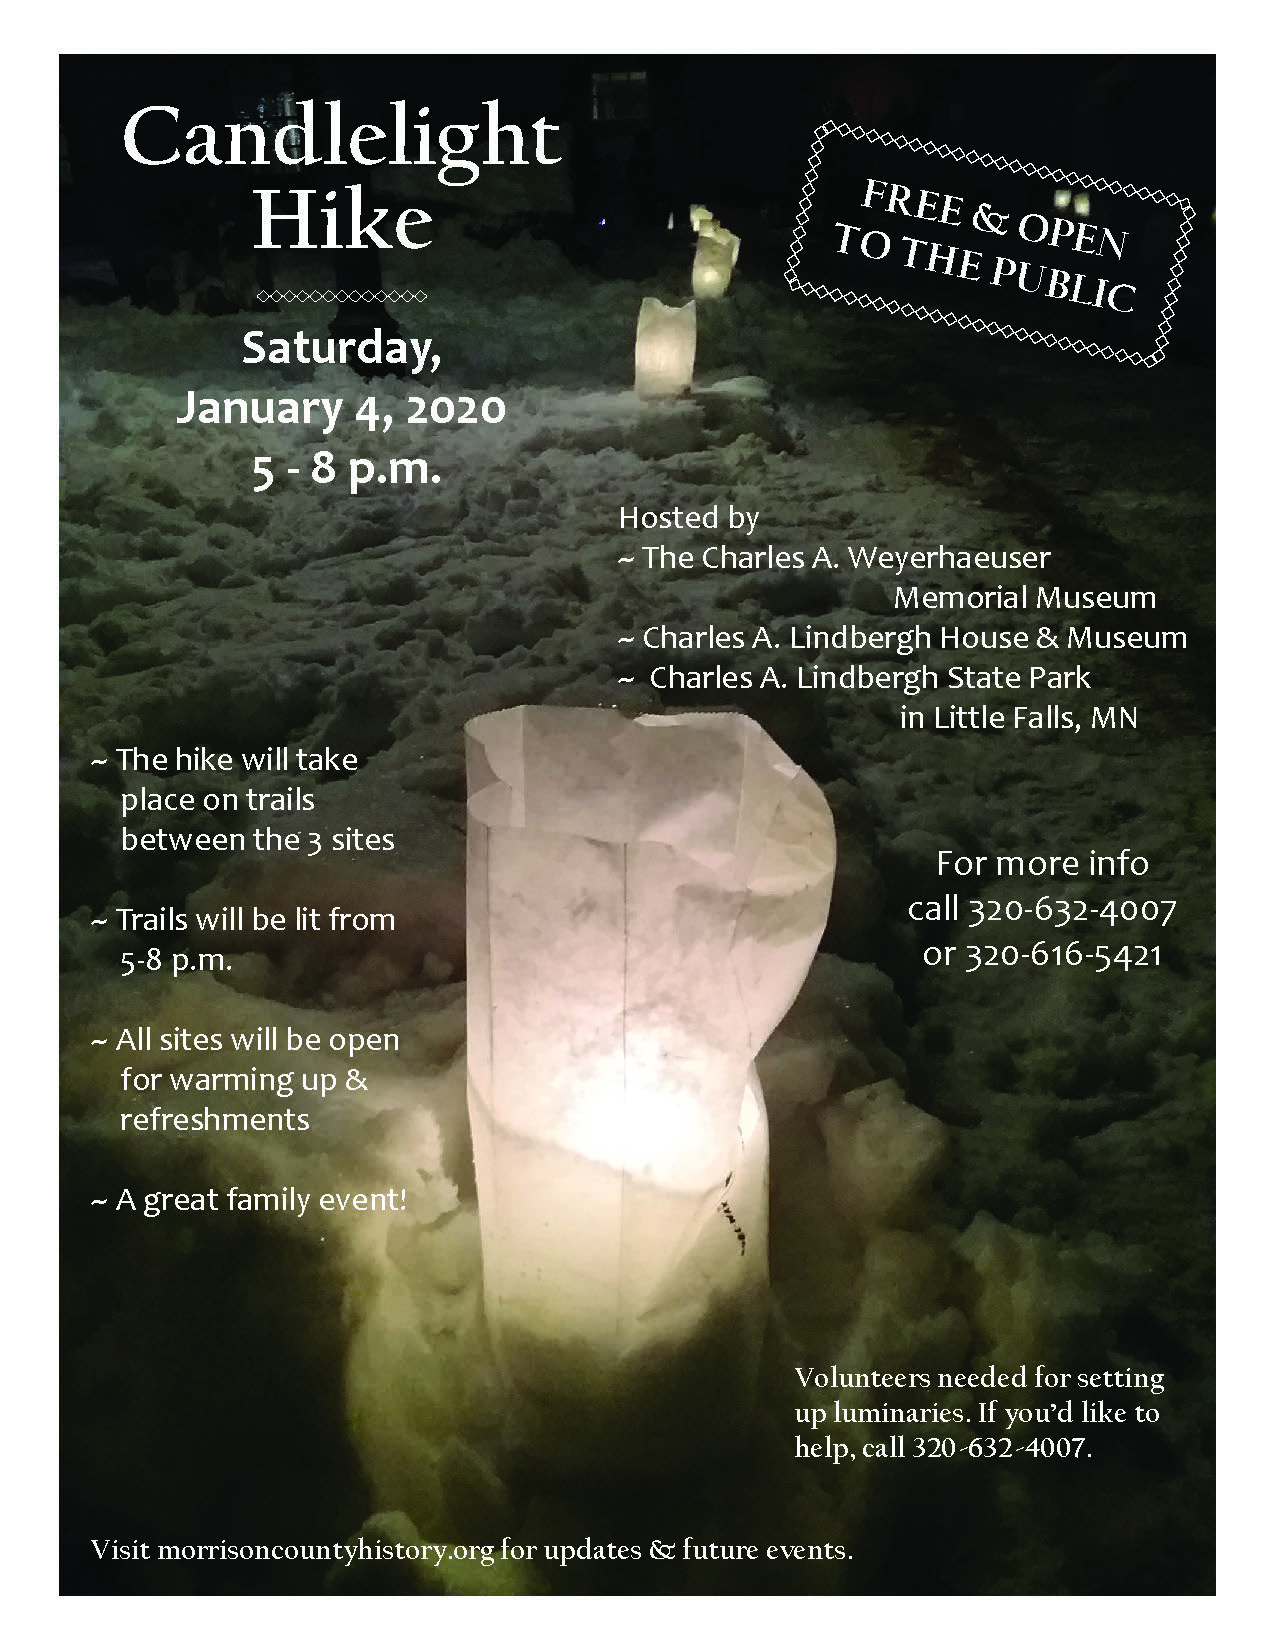 2020 Candlelight Hike flier.